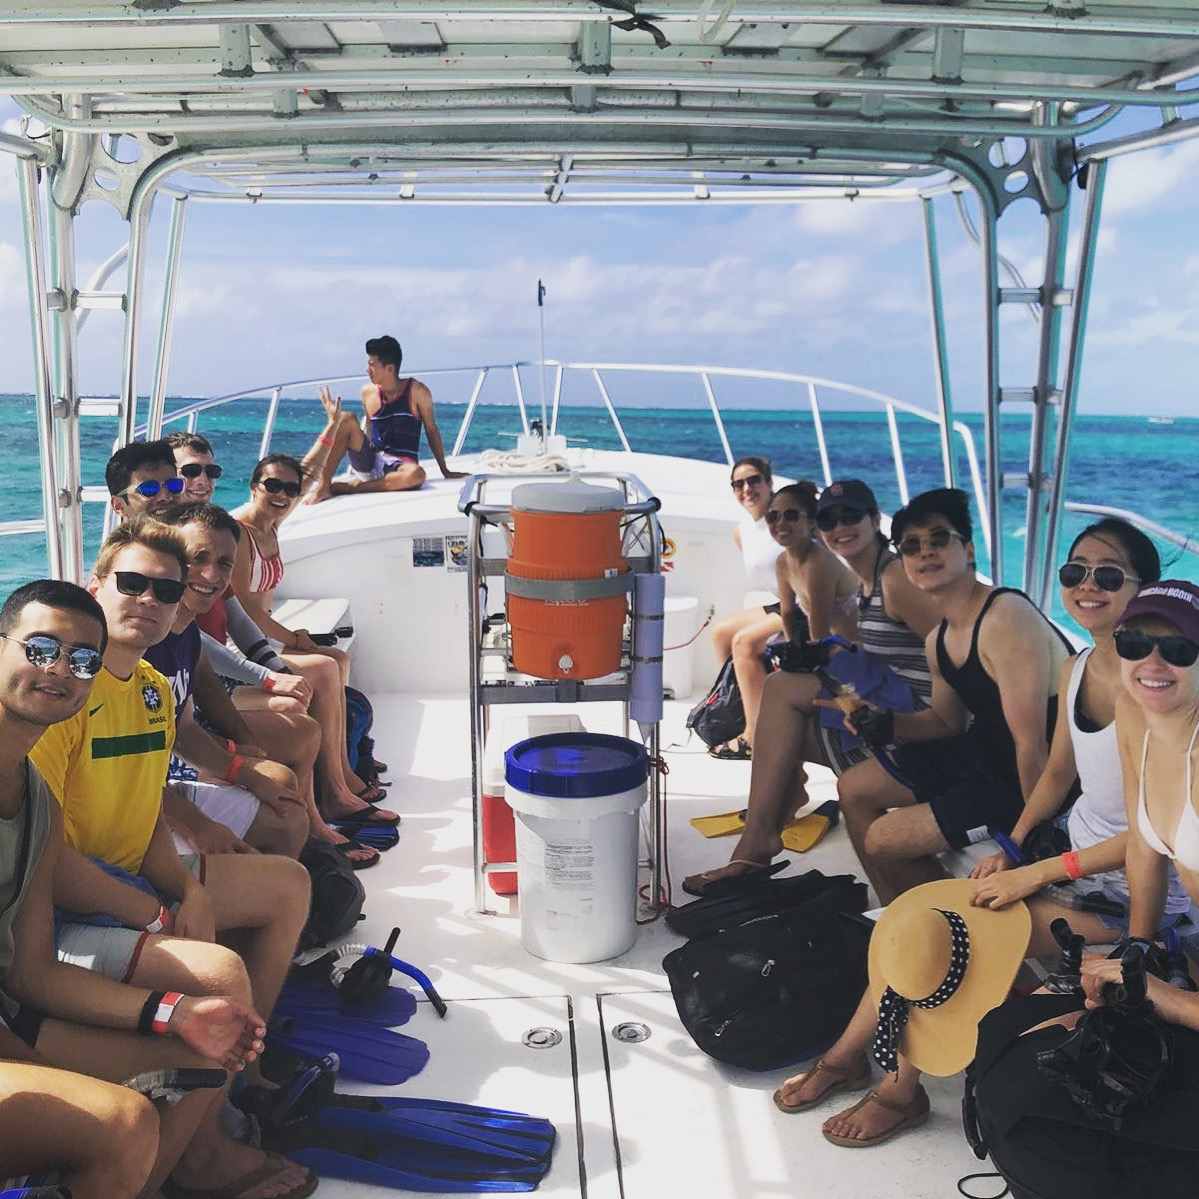 The RW Belize crew continues the grand tradition of boating, on their way to Hol Chan Marine Reserve for snorkeling